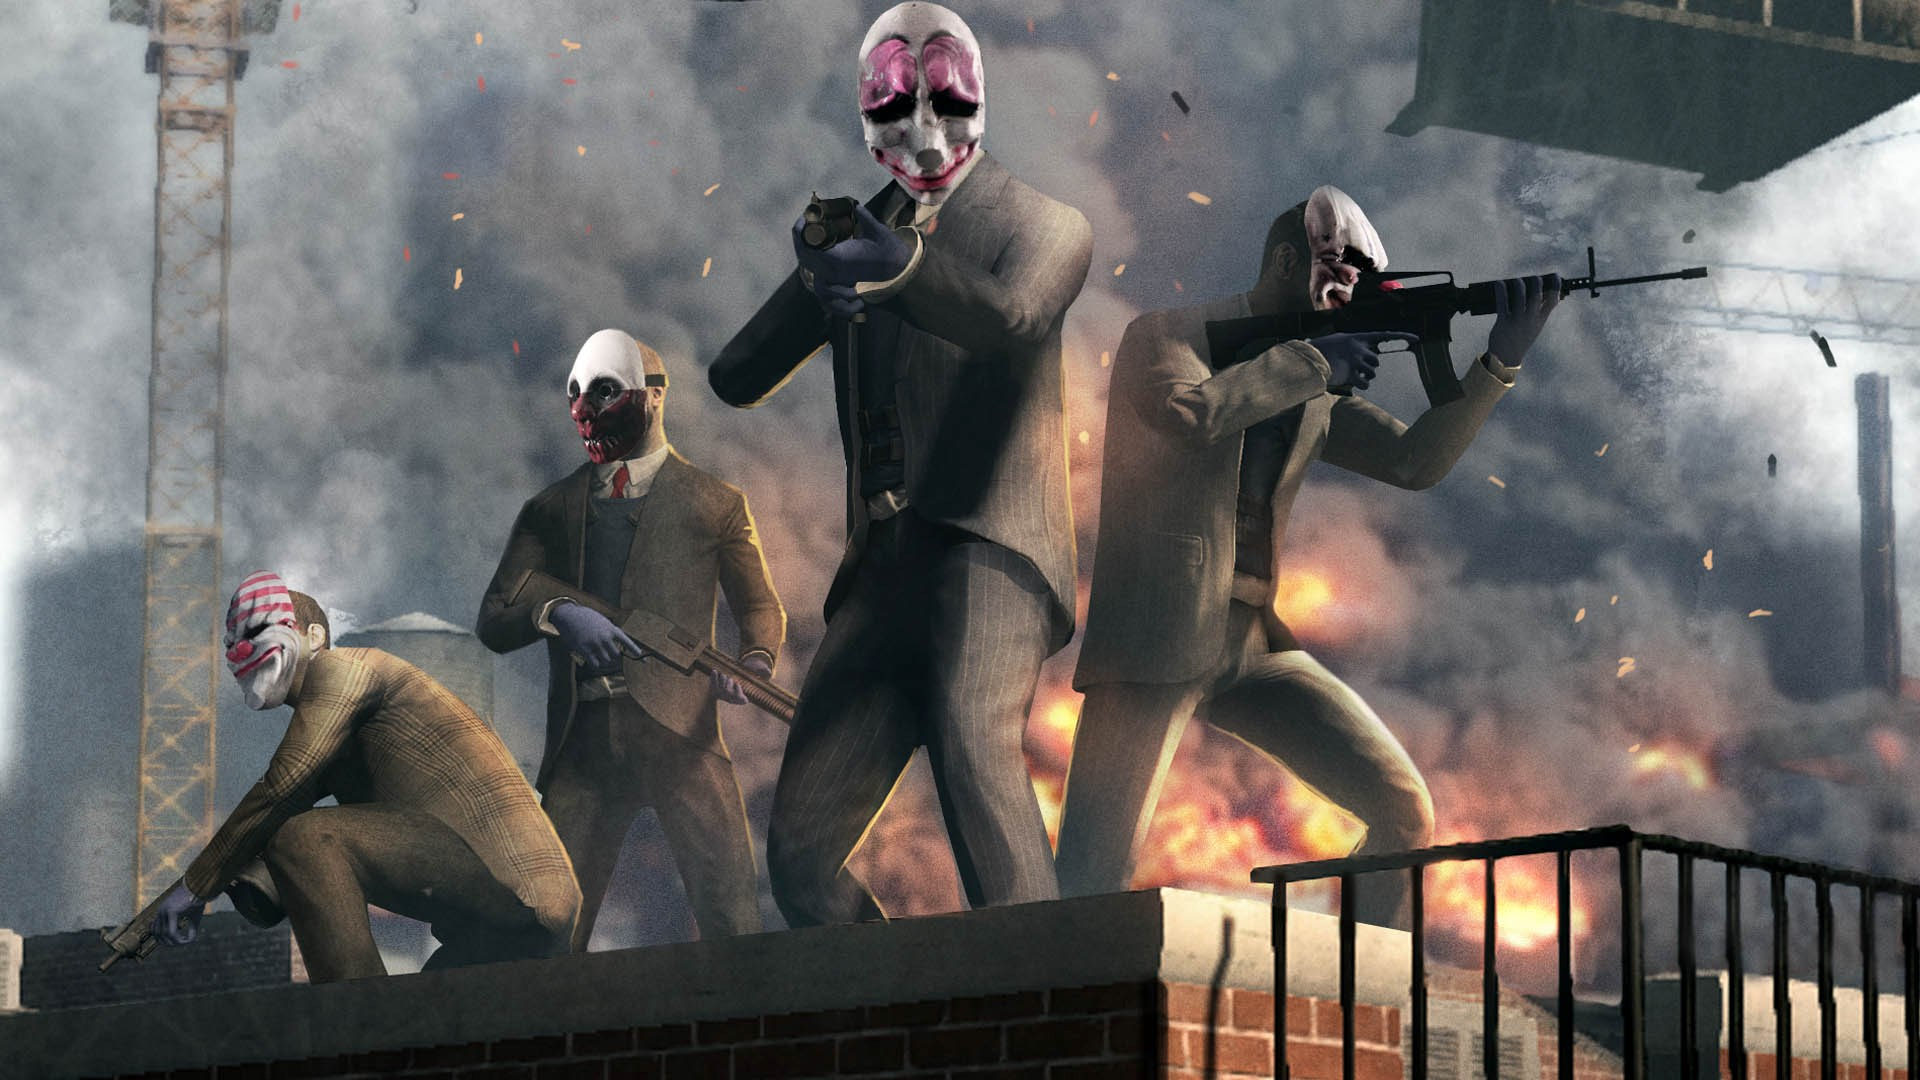 1920x1080-px-Widescreen-PayDay-The-Heist-by-Scott-Fletcher-for-TW-com-wallpaper-wp340904